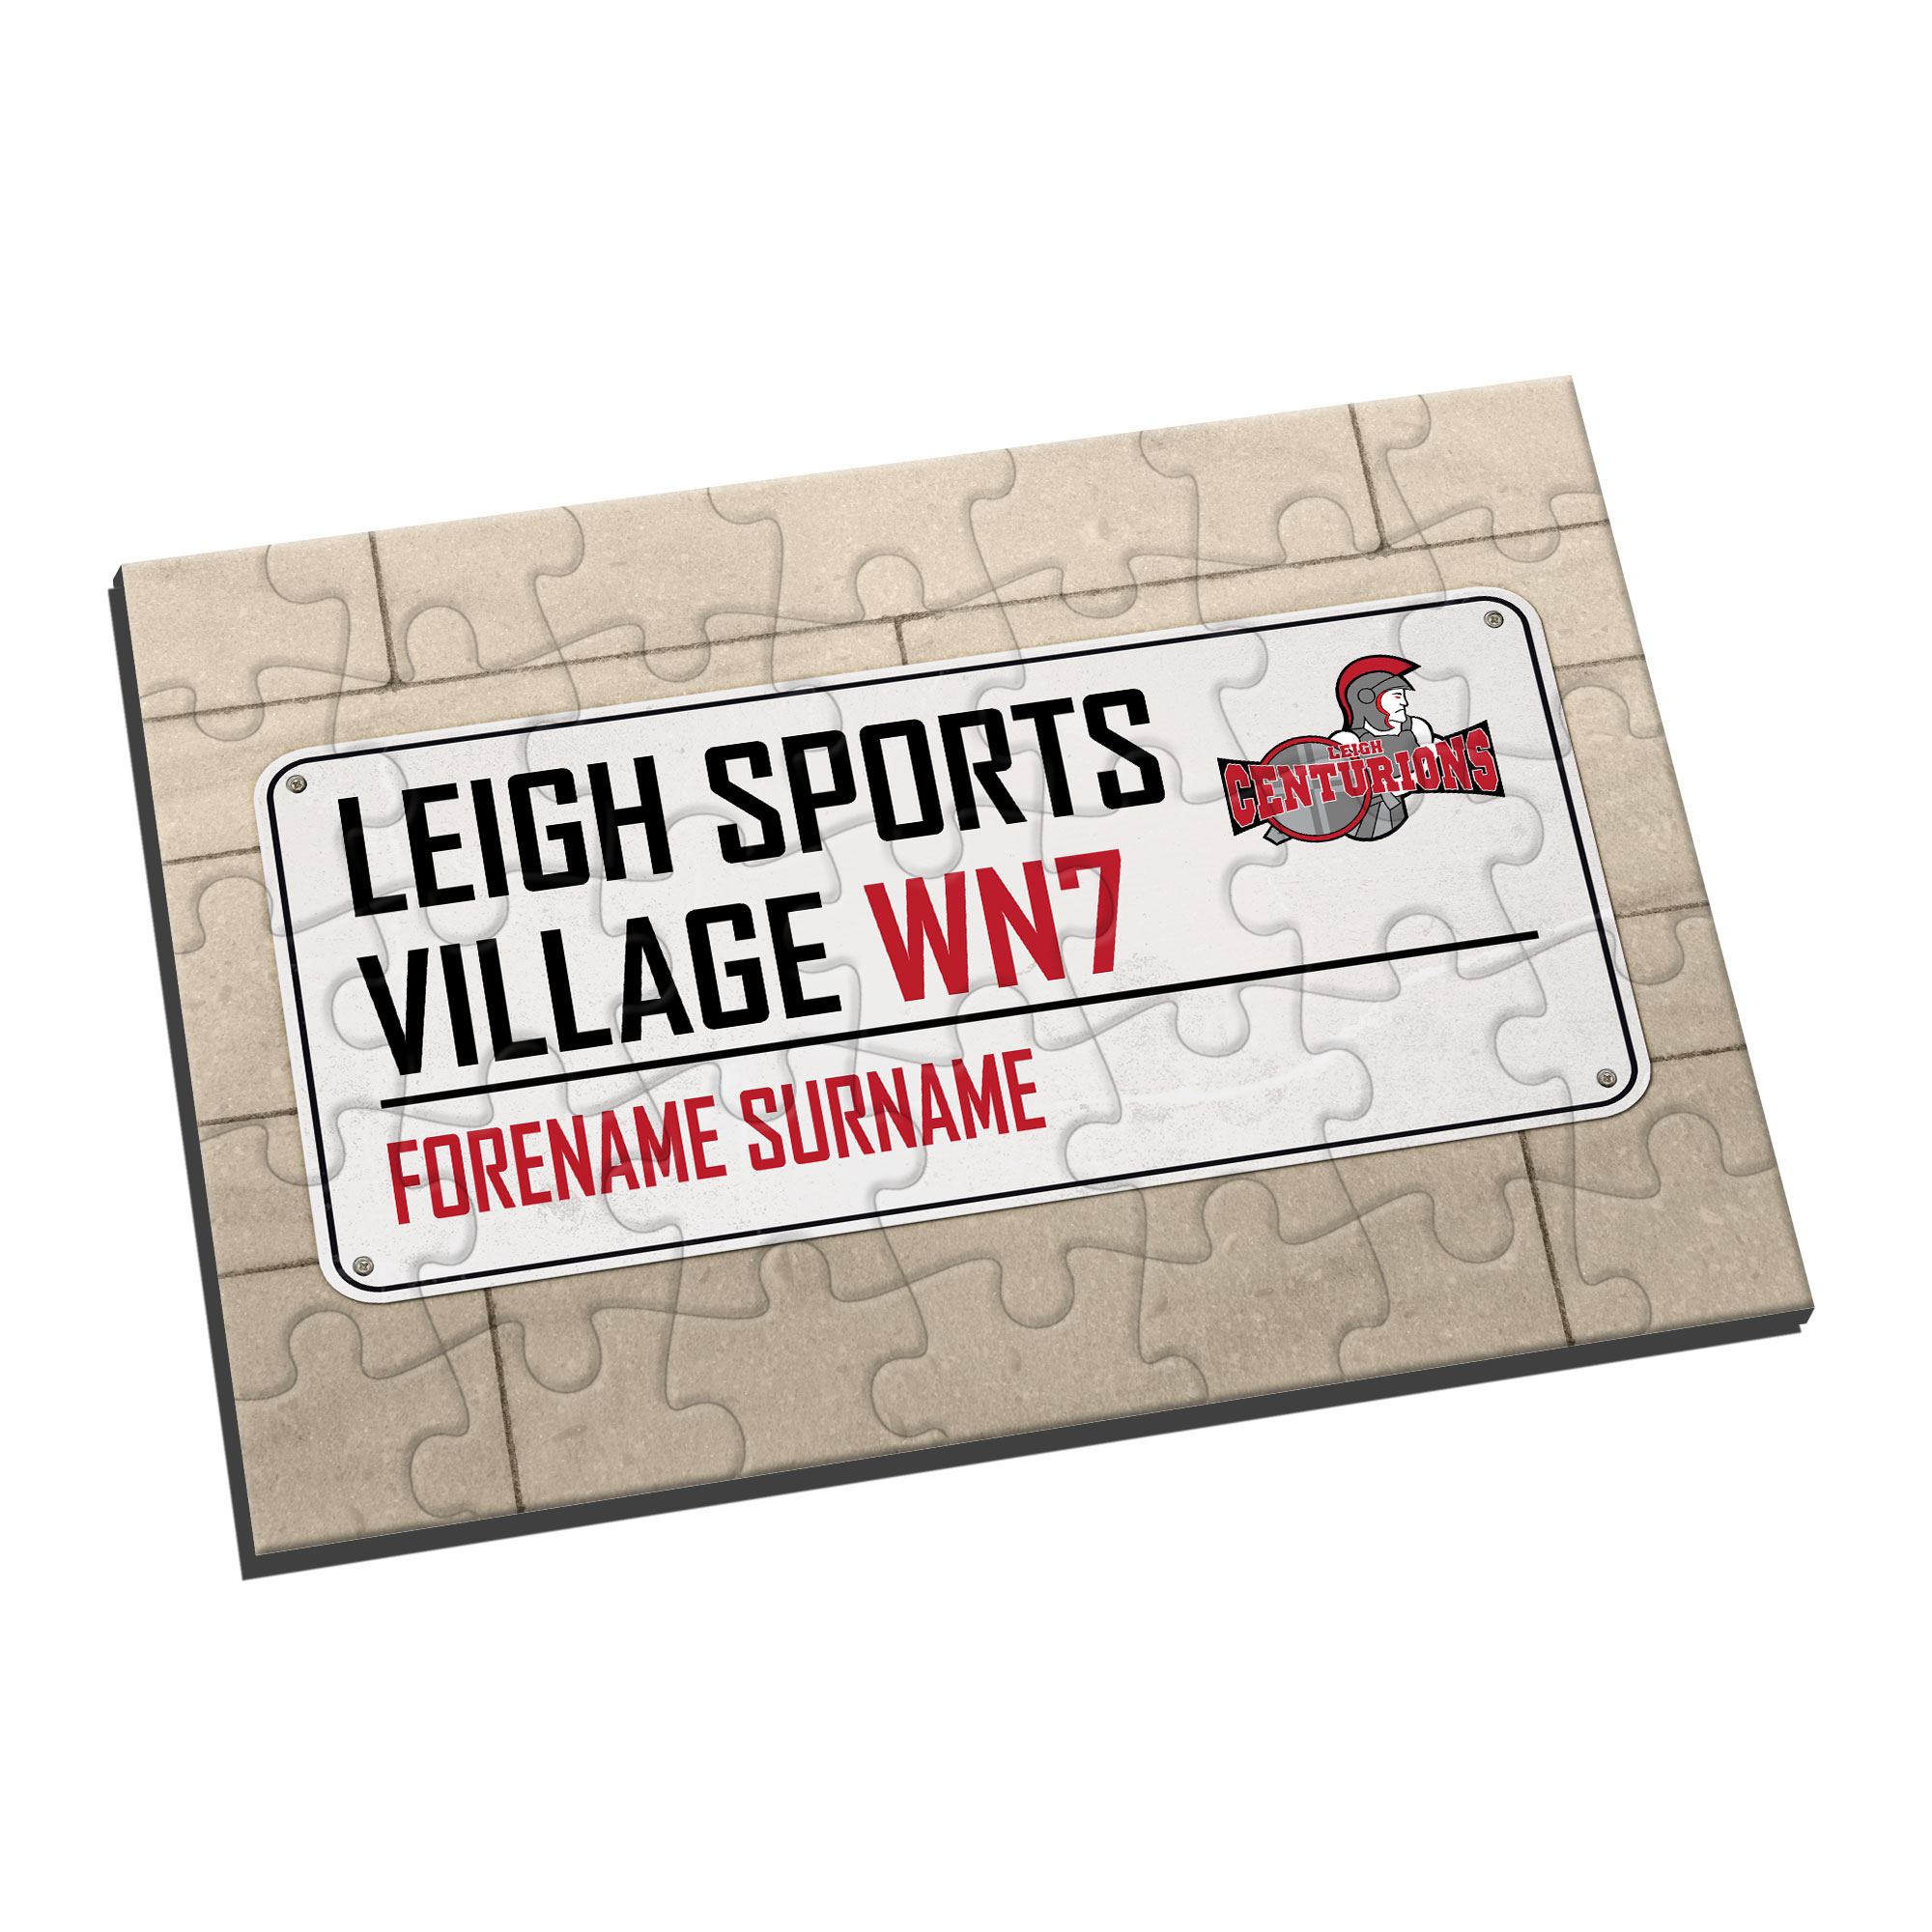 Leigh Centurions Street Sign Jigsaw